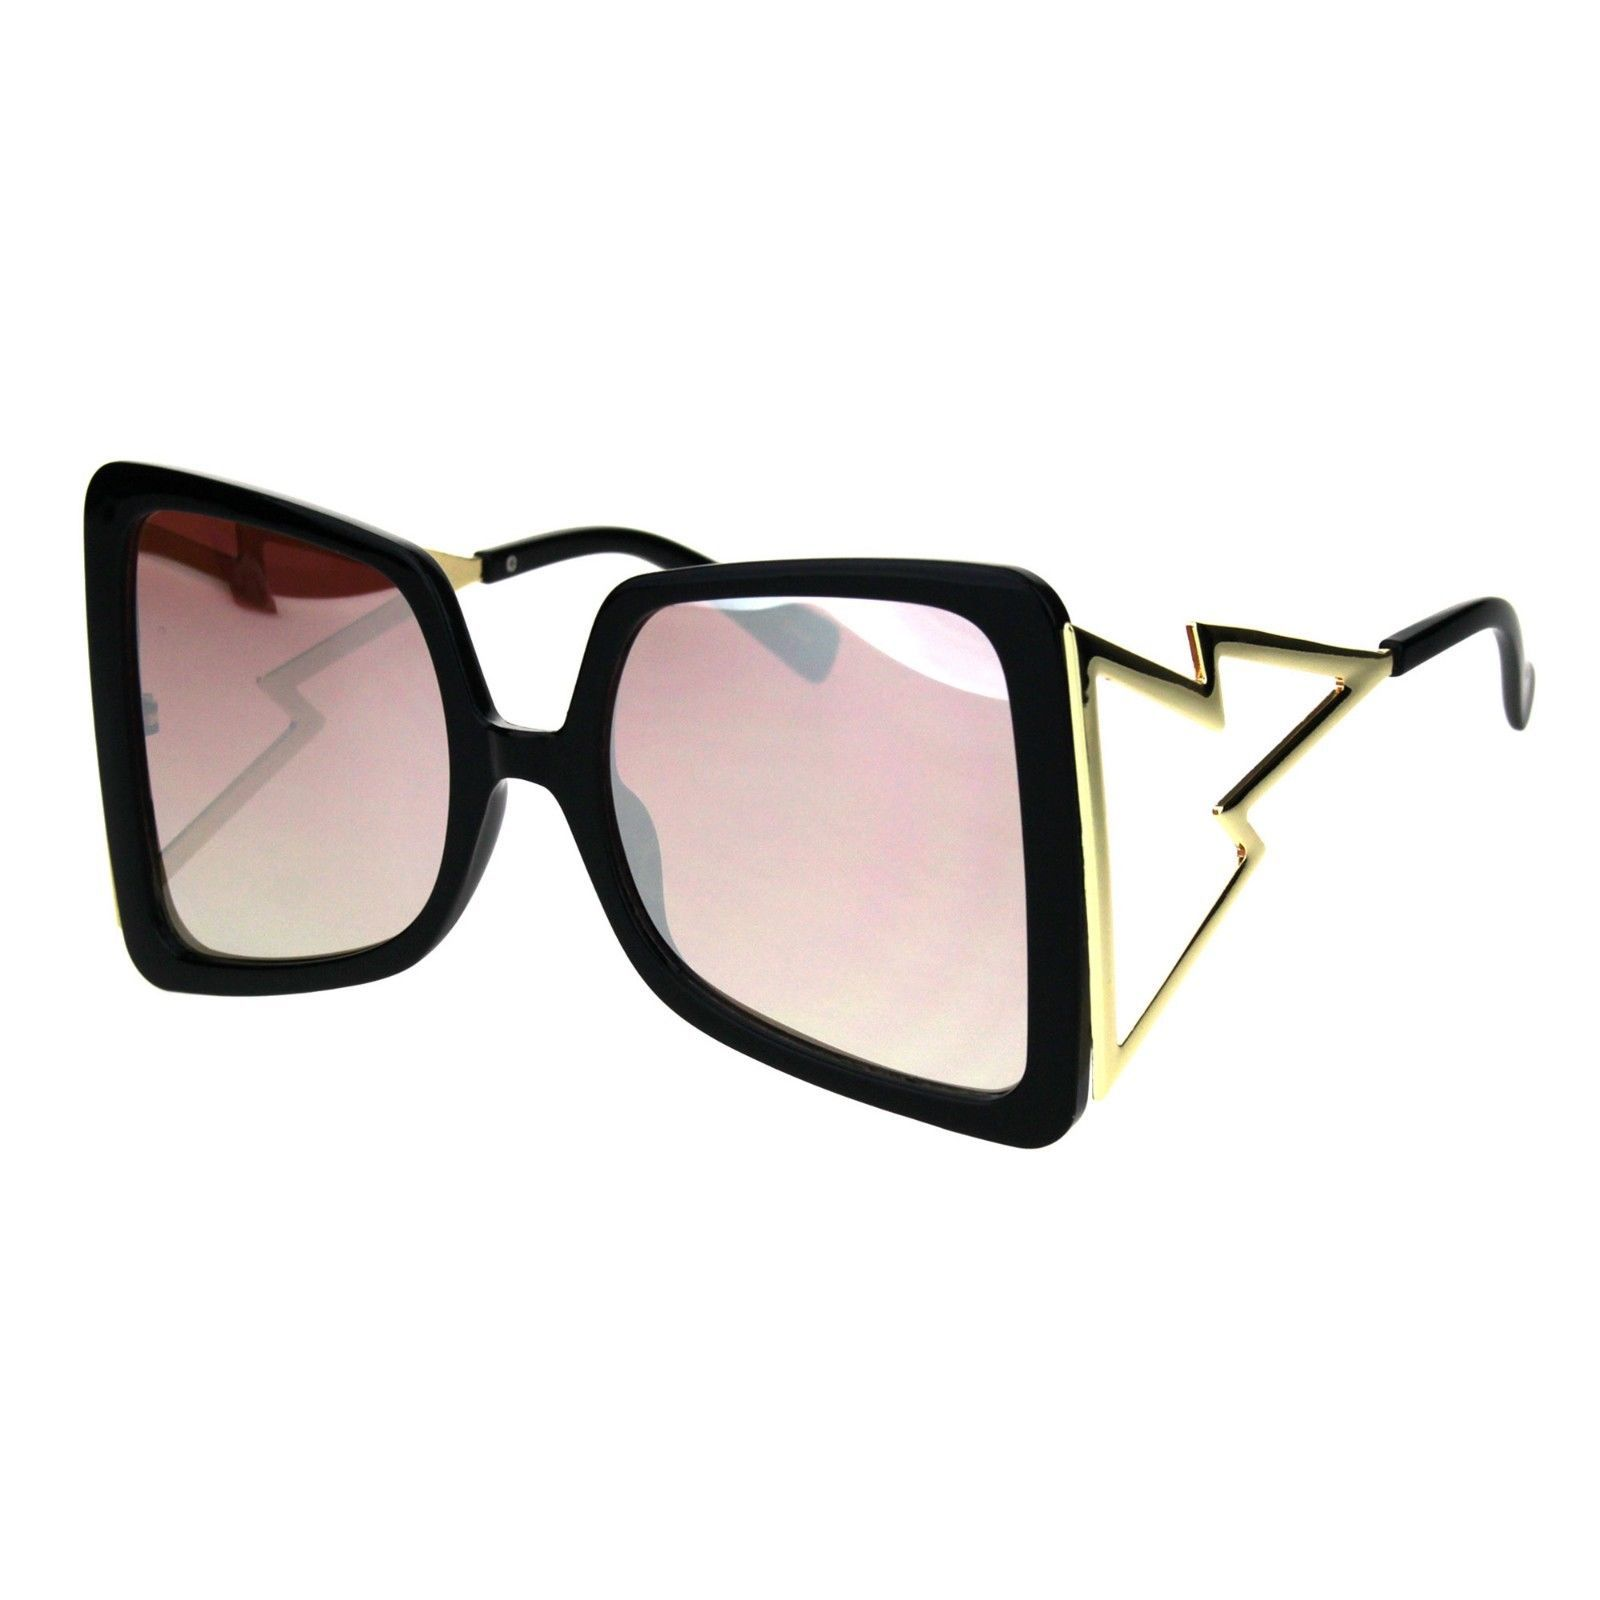 Super Oversized Square Sunglasses Womens Glamour Fashion Shades UV 400